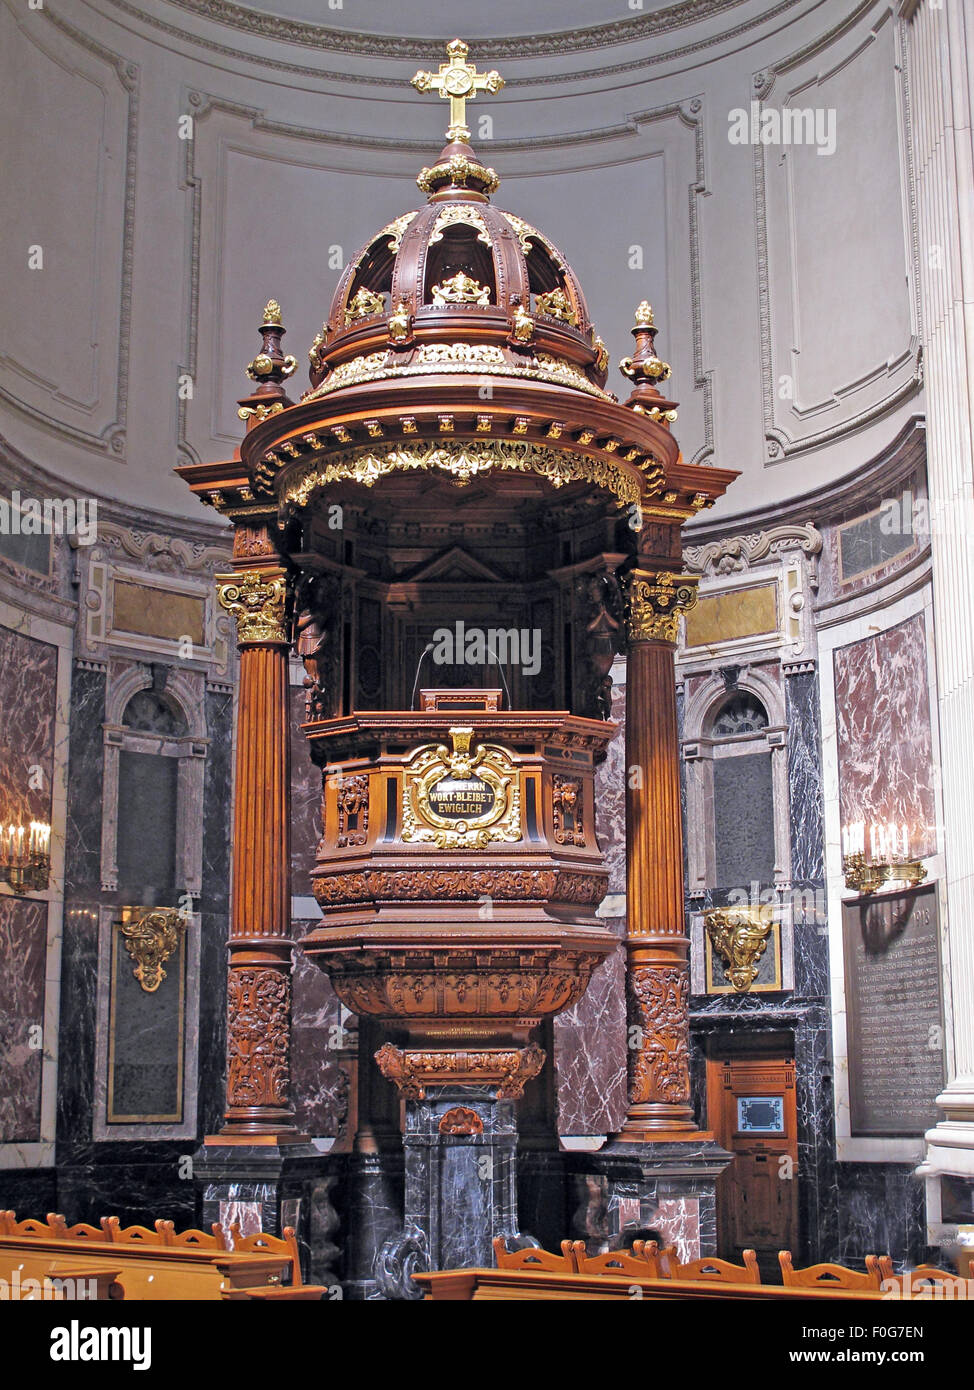 Pulpit in the Berlin Cathedral Pulpit c1905, Germany; Wood and gold design with crucifix. Stock Photo